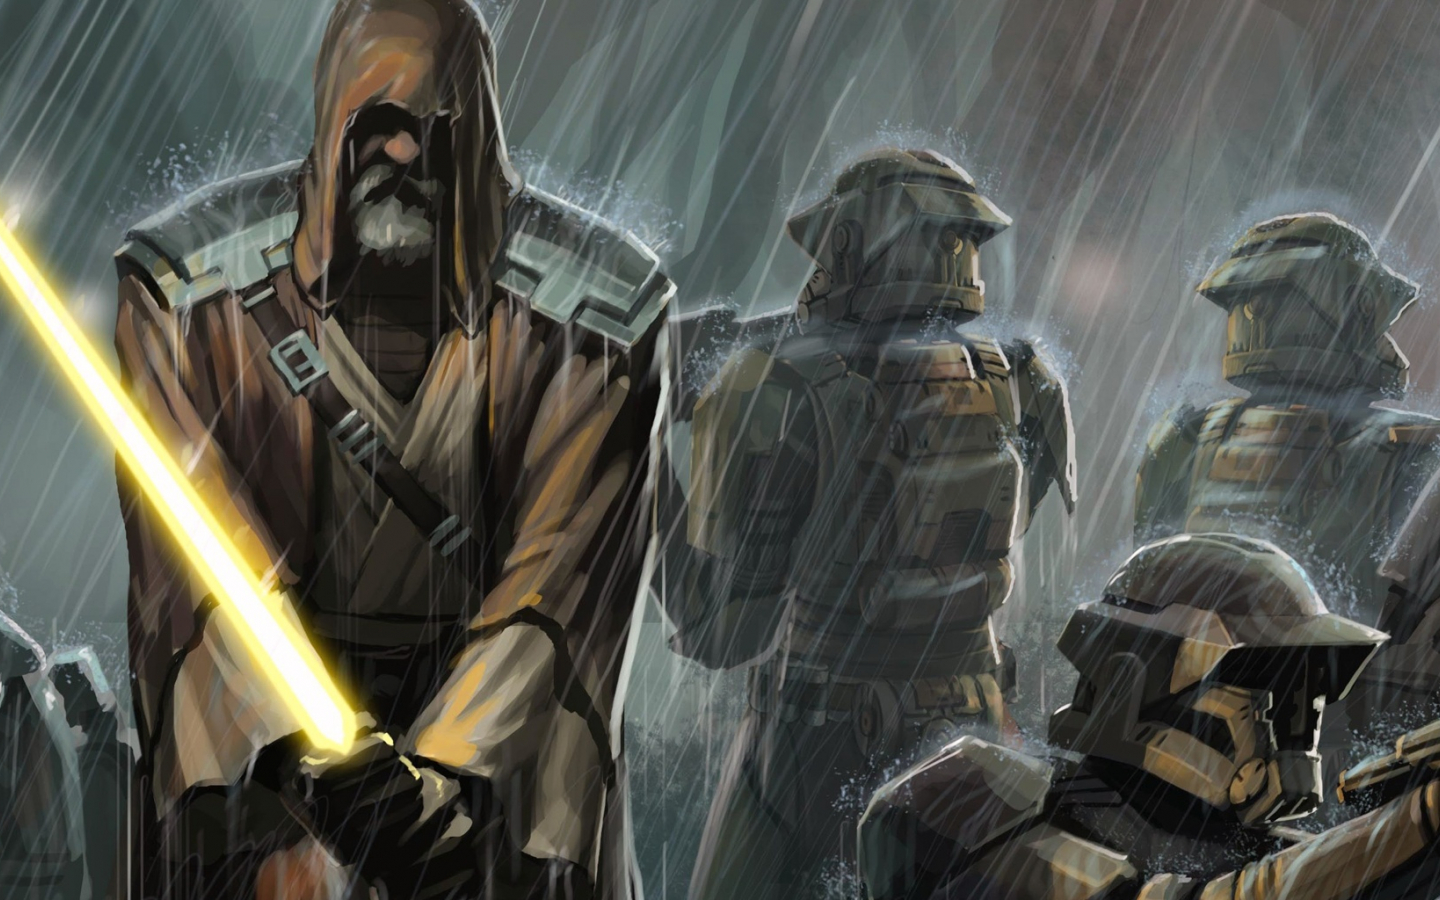 Free Download Star Wars Wallpapers Dual Screen The Art Mad